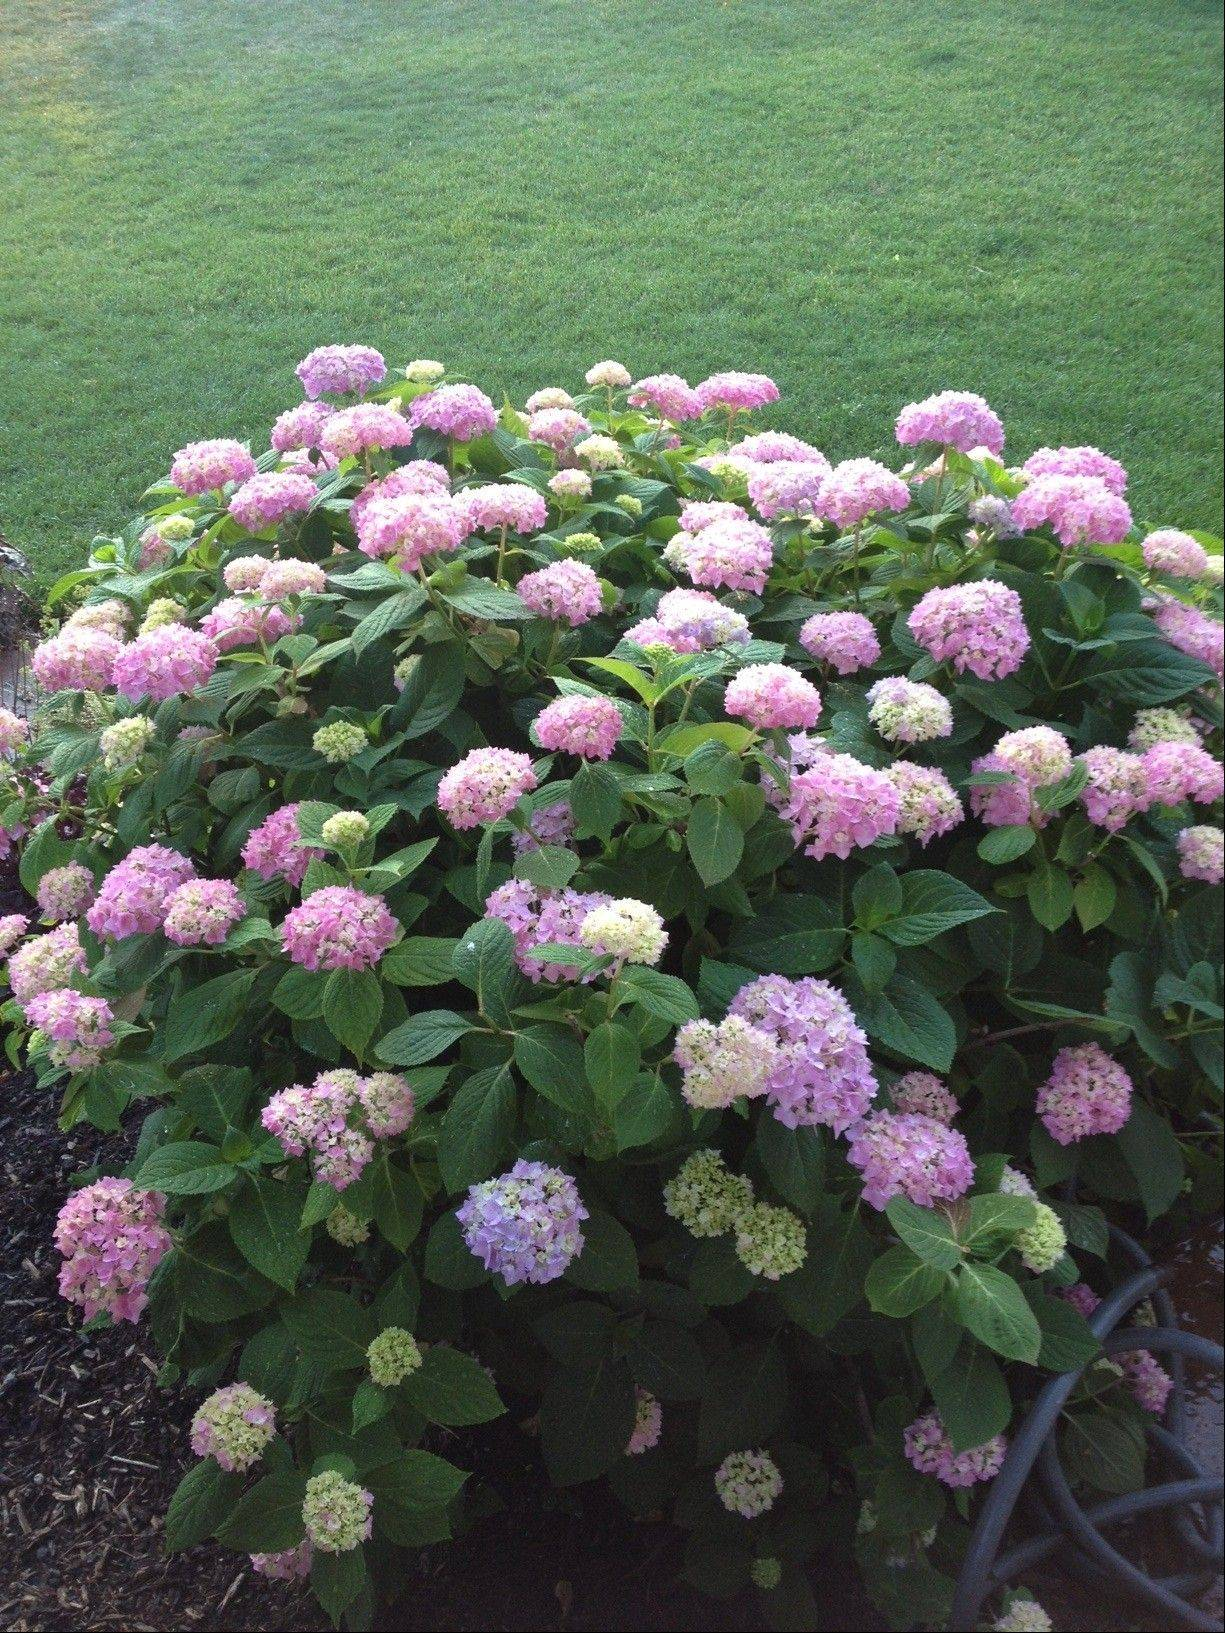 Endless Summer hydrangeas bloom from late spring to fall.